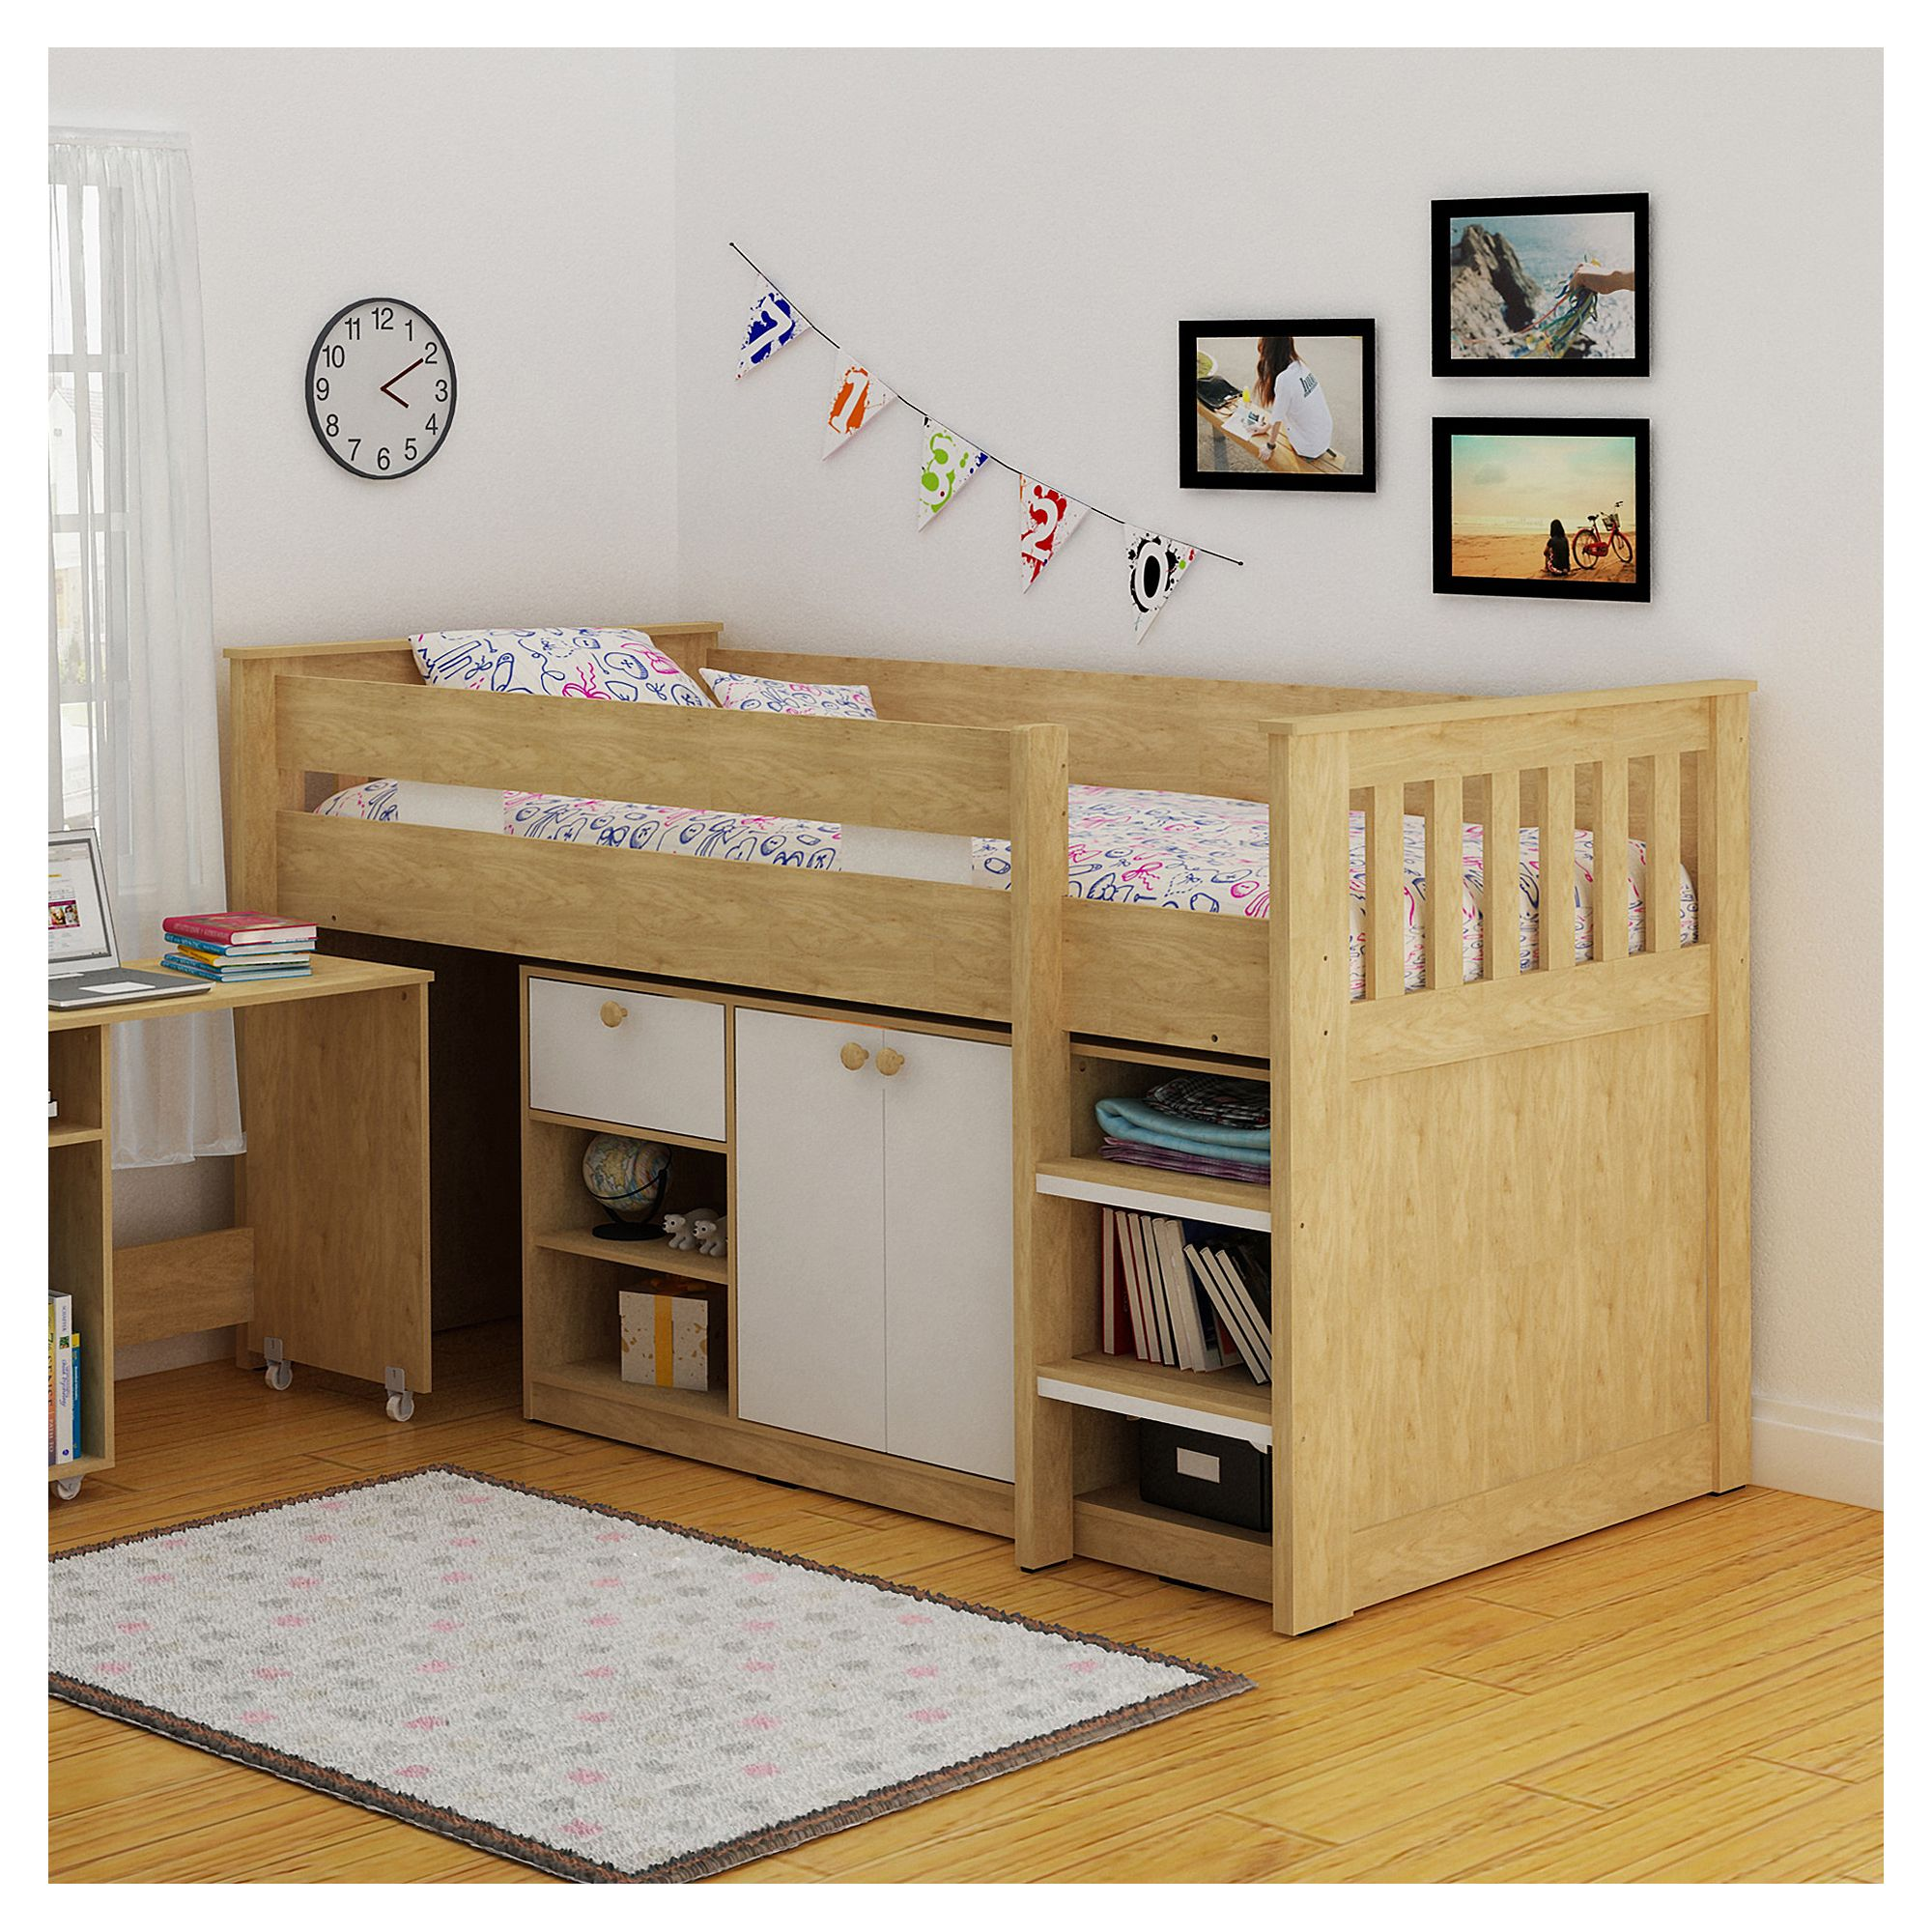 Home Essence Merlin Study Bunk Bed - Oak / White at Tesco Direct